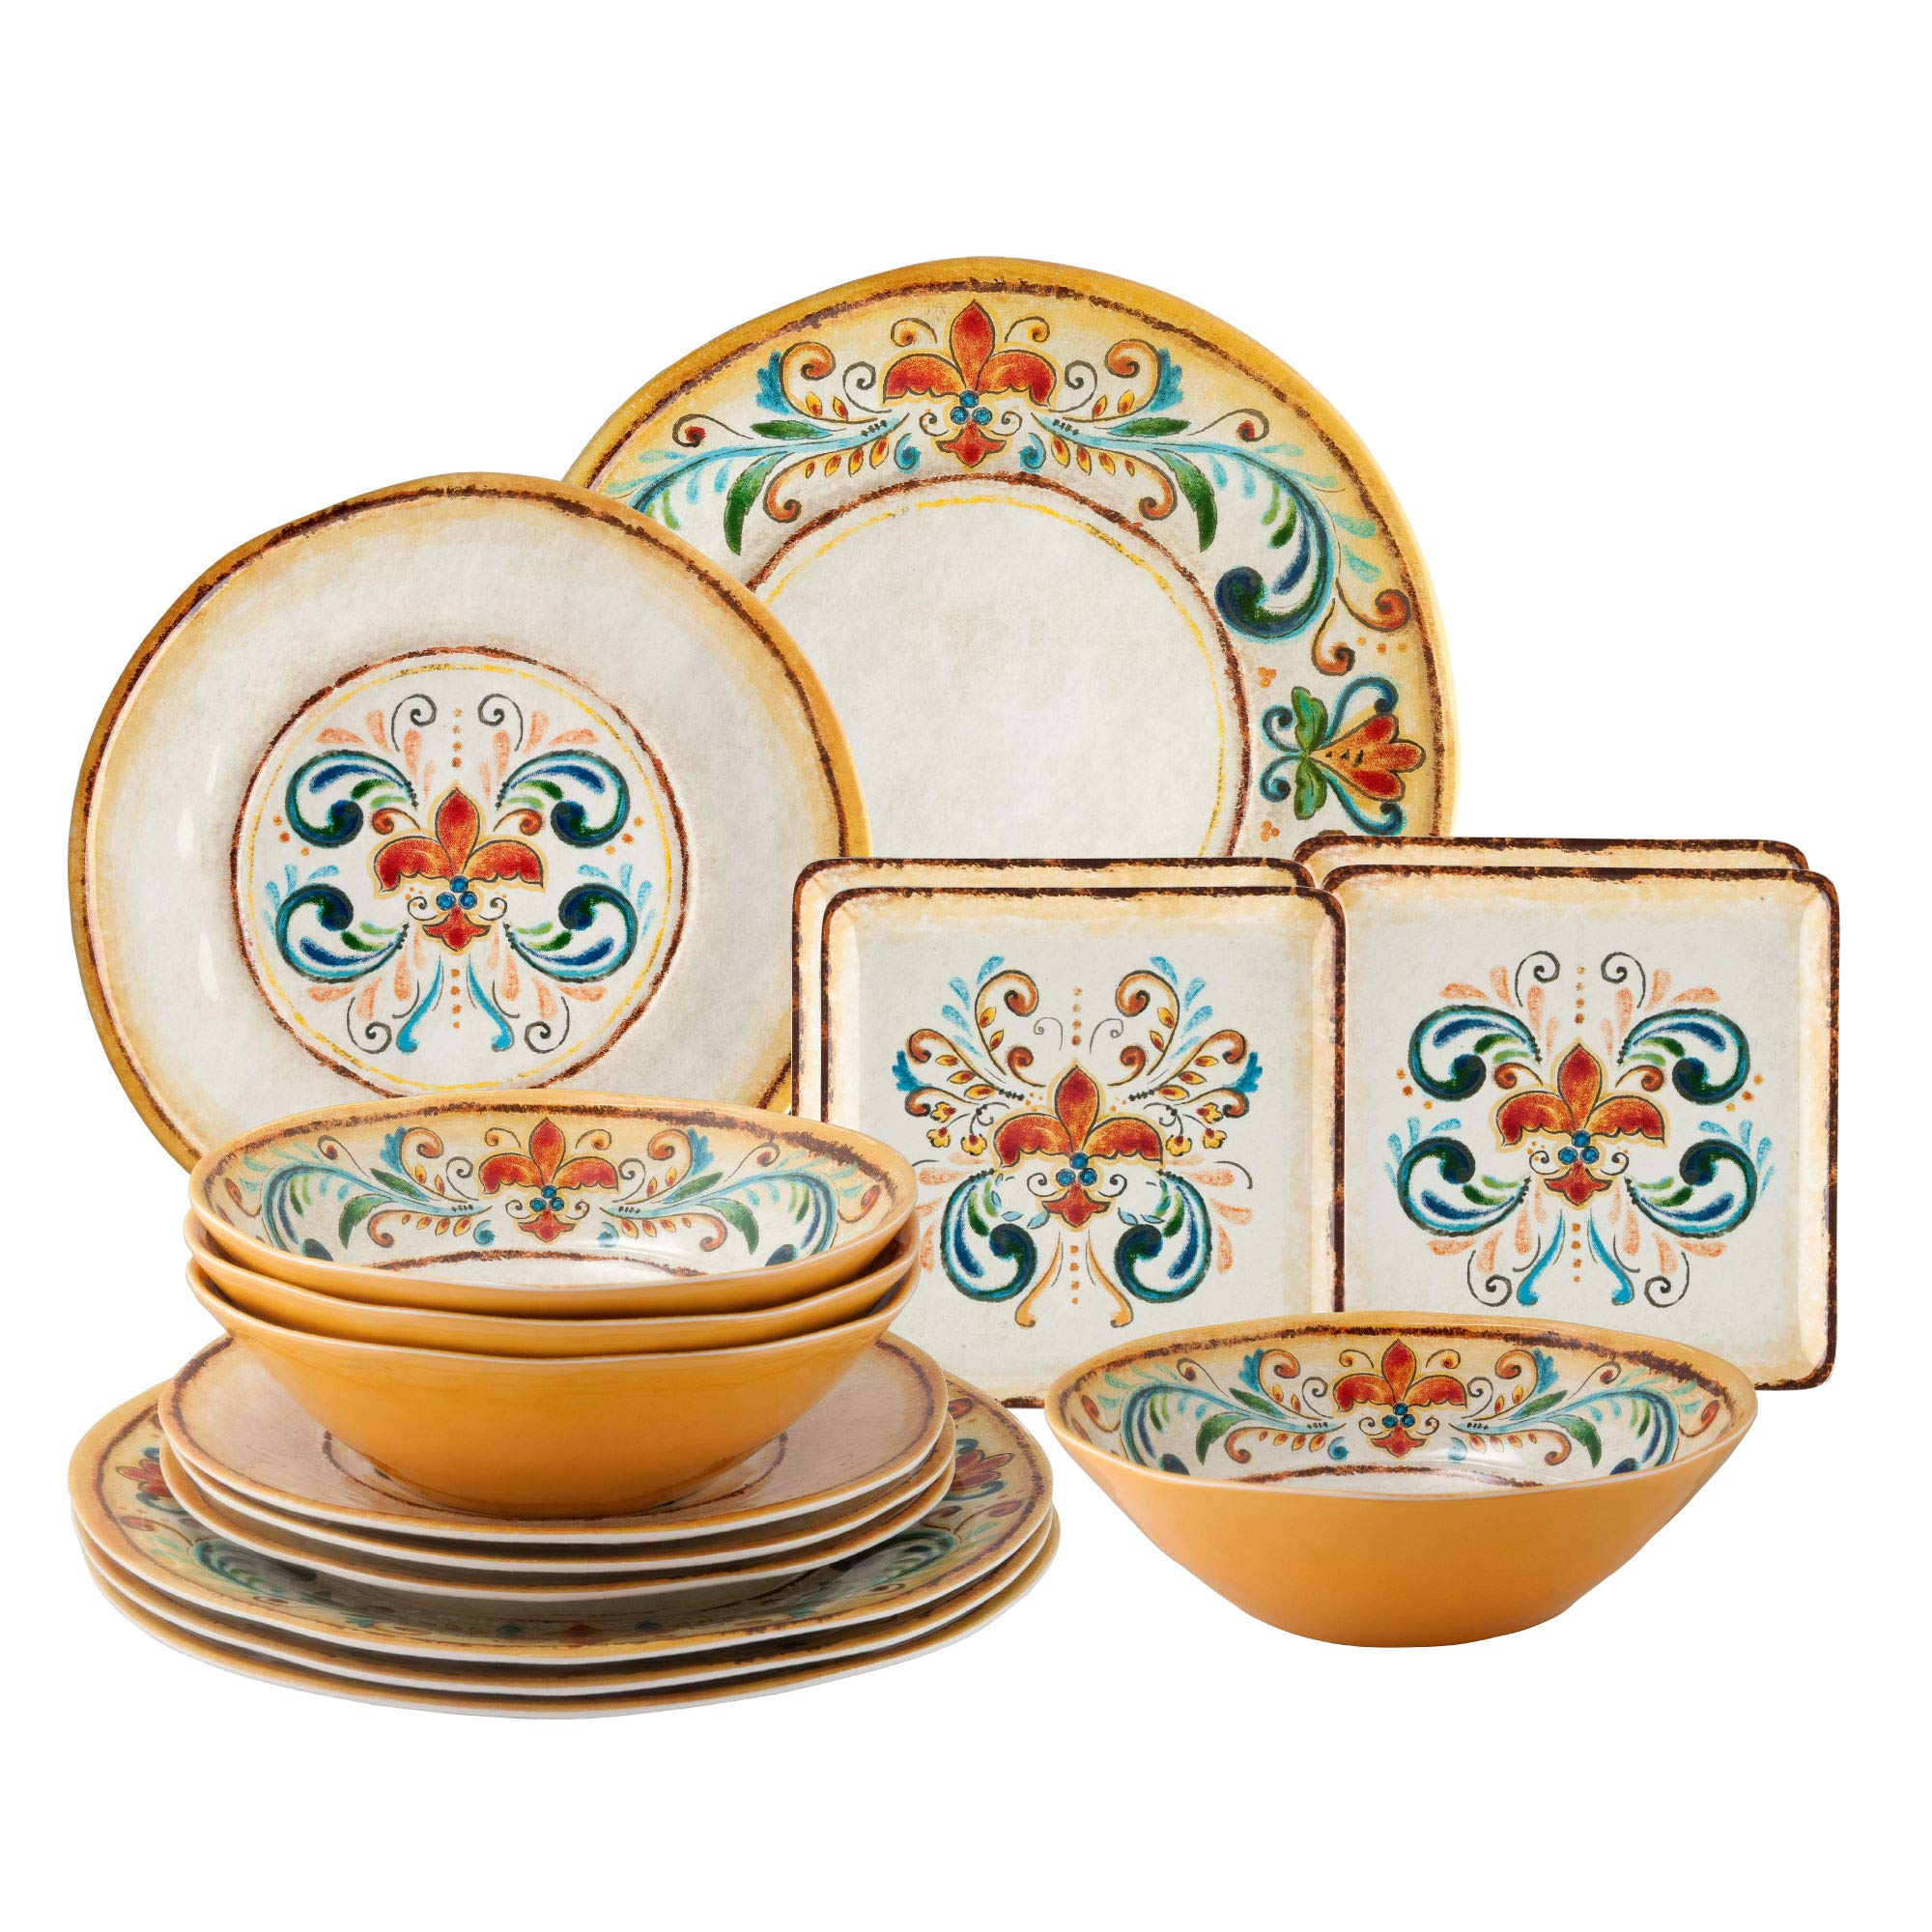 Gourmet Art 16-Piece Tuscany Melamine Dinnerware Set by Supreme Housewares